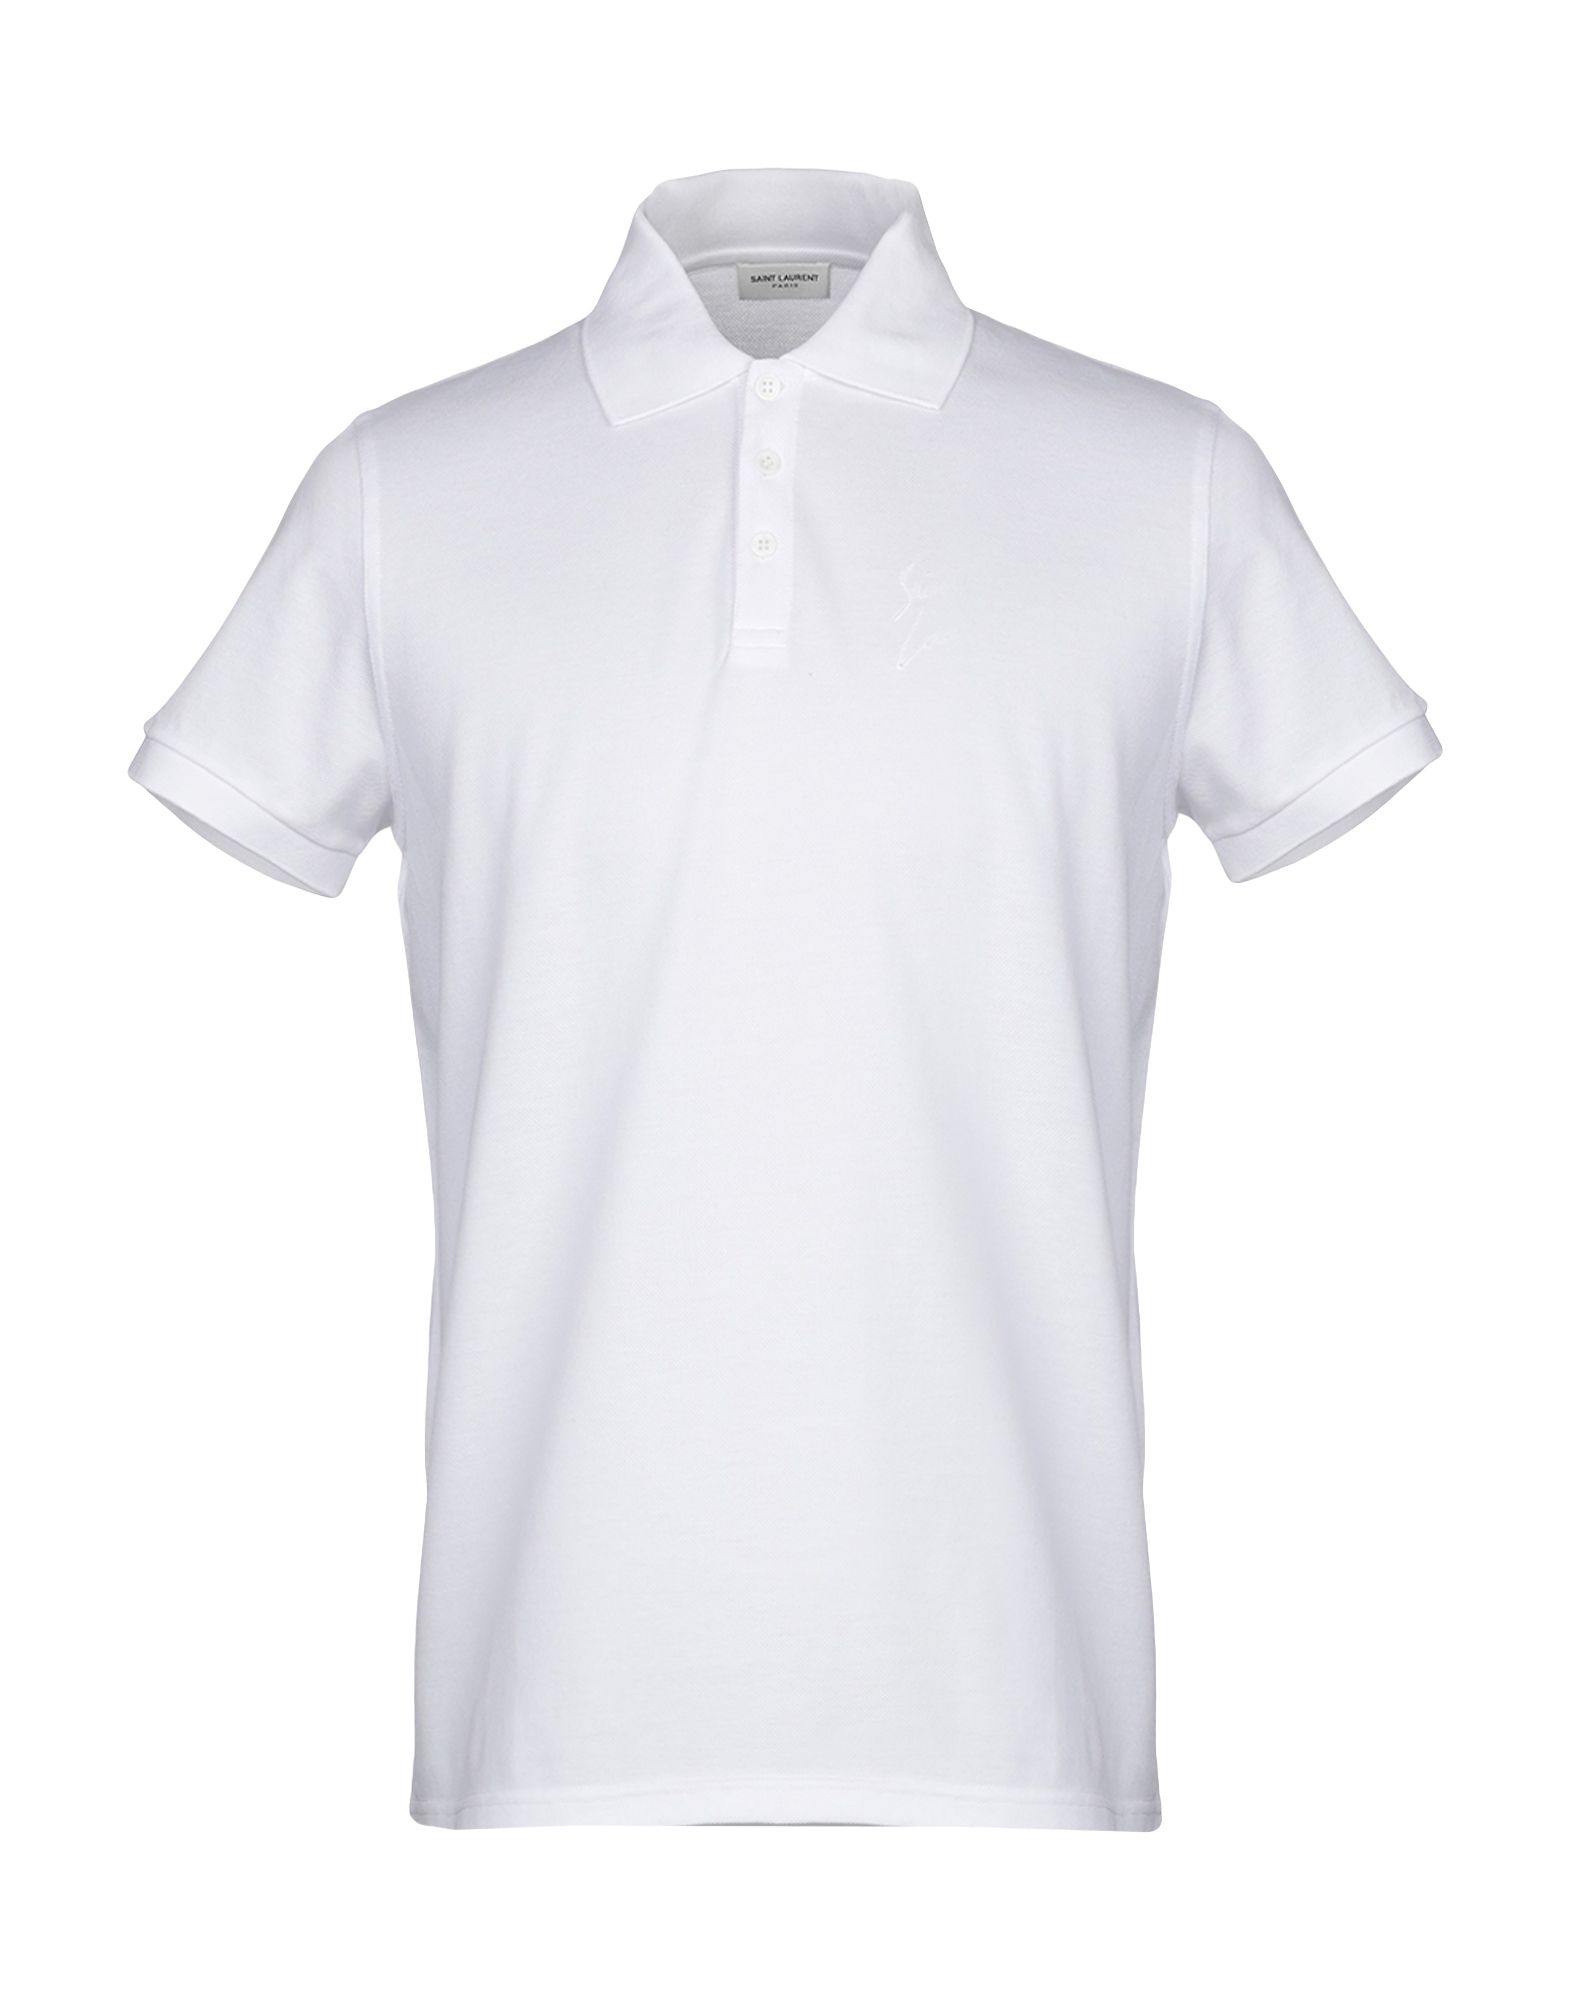 a1ab005c22d Saint Laurent Polo Shirt - Men Saint Laurent Polo Shirts online on ...